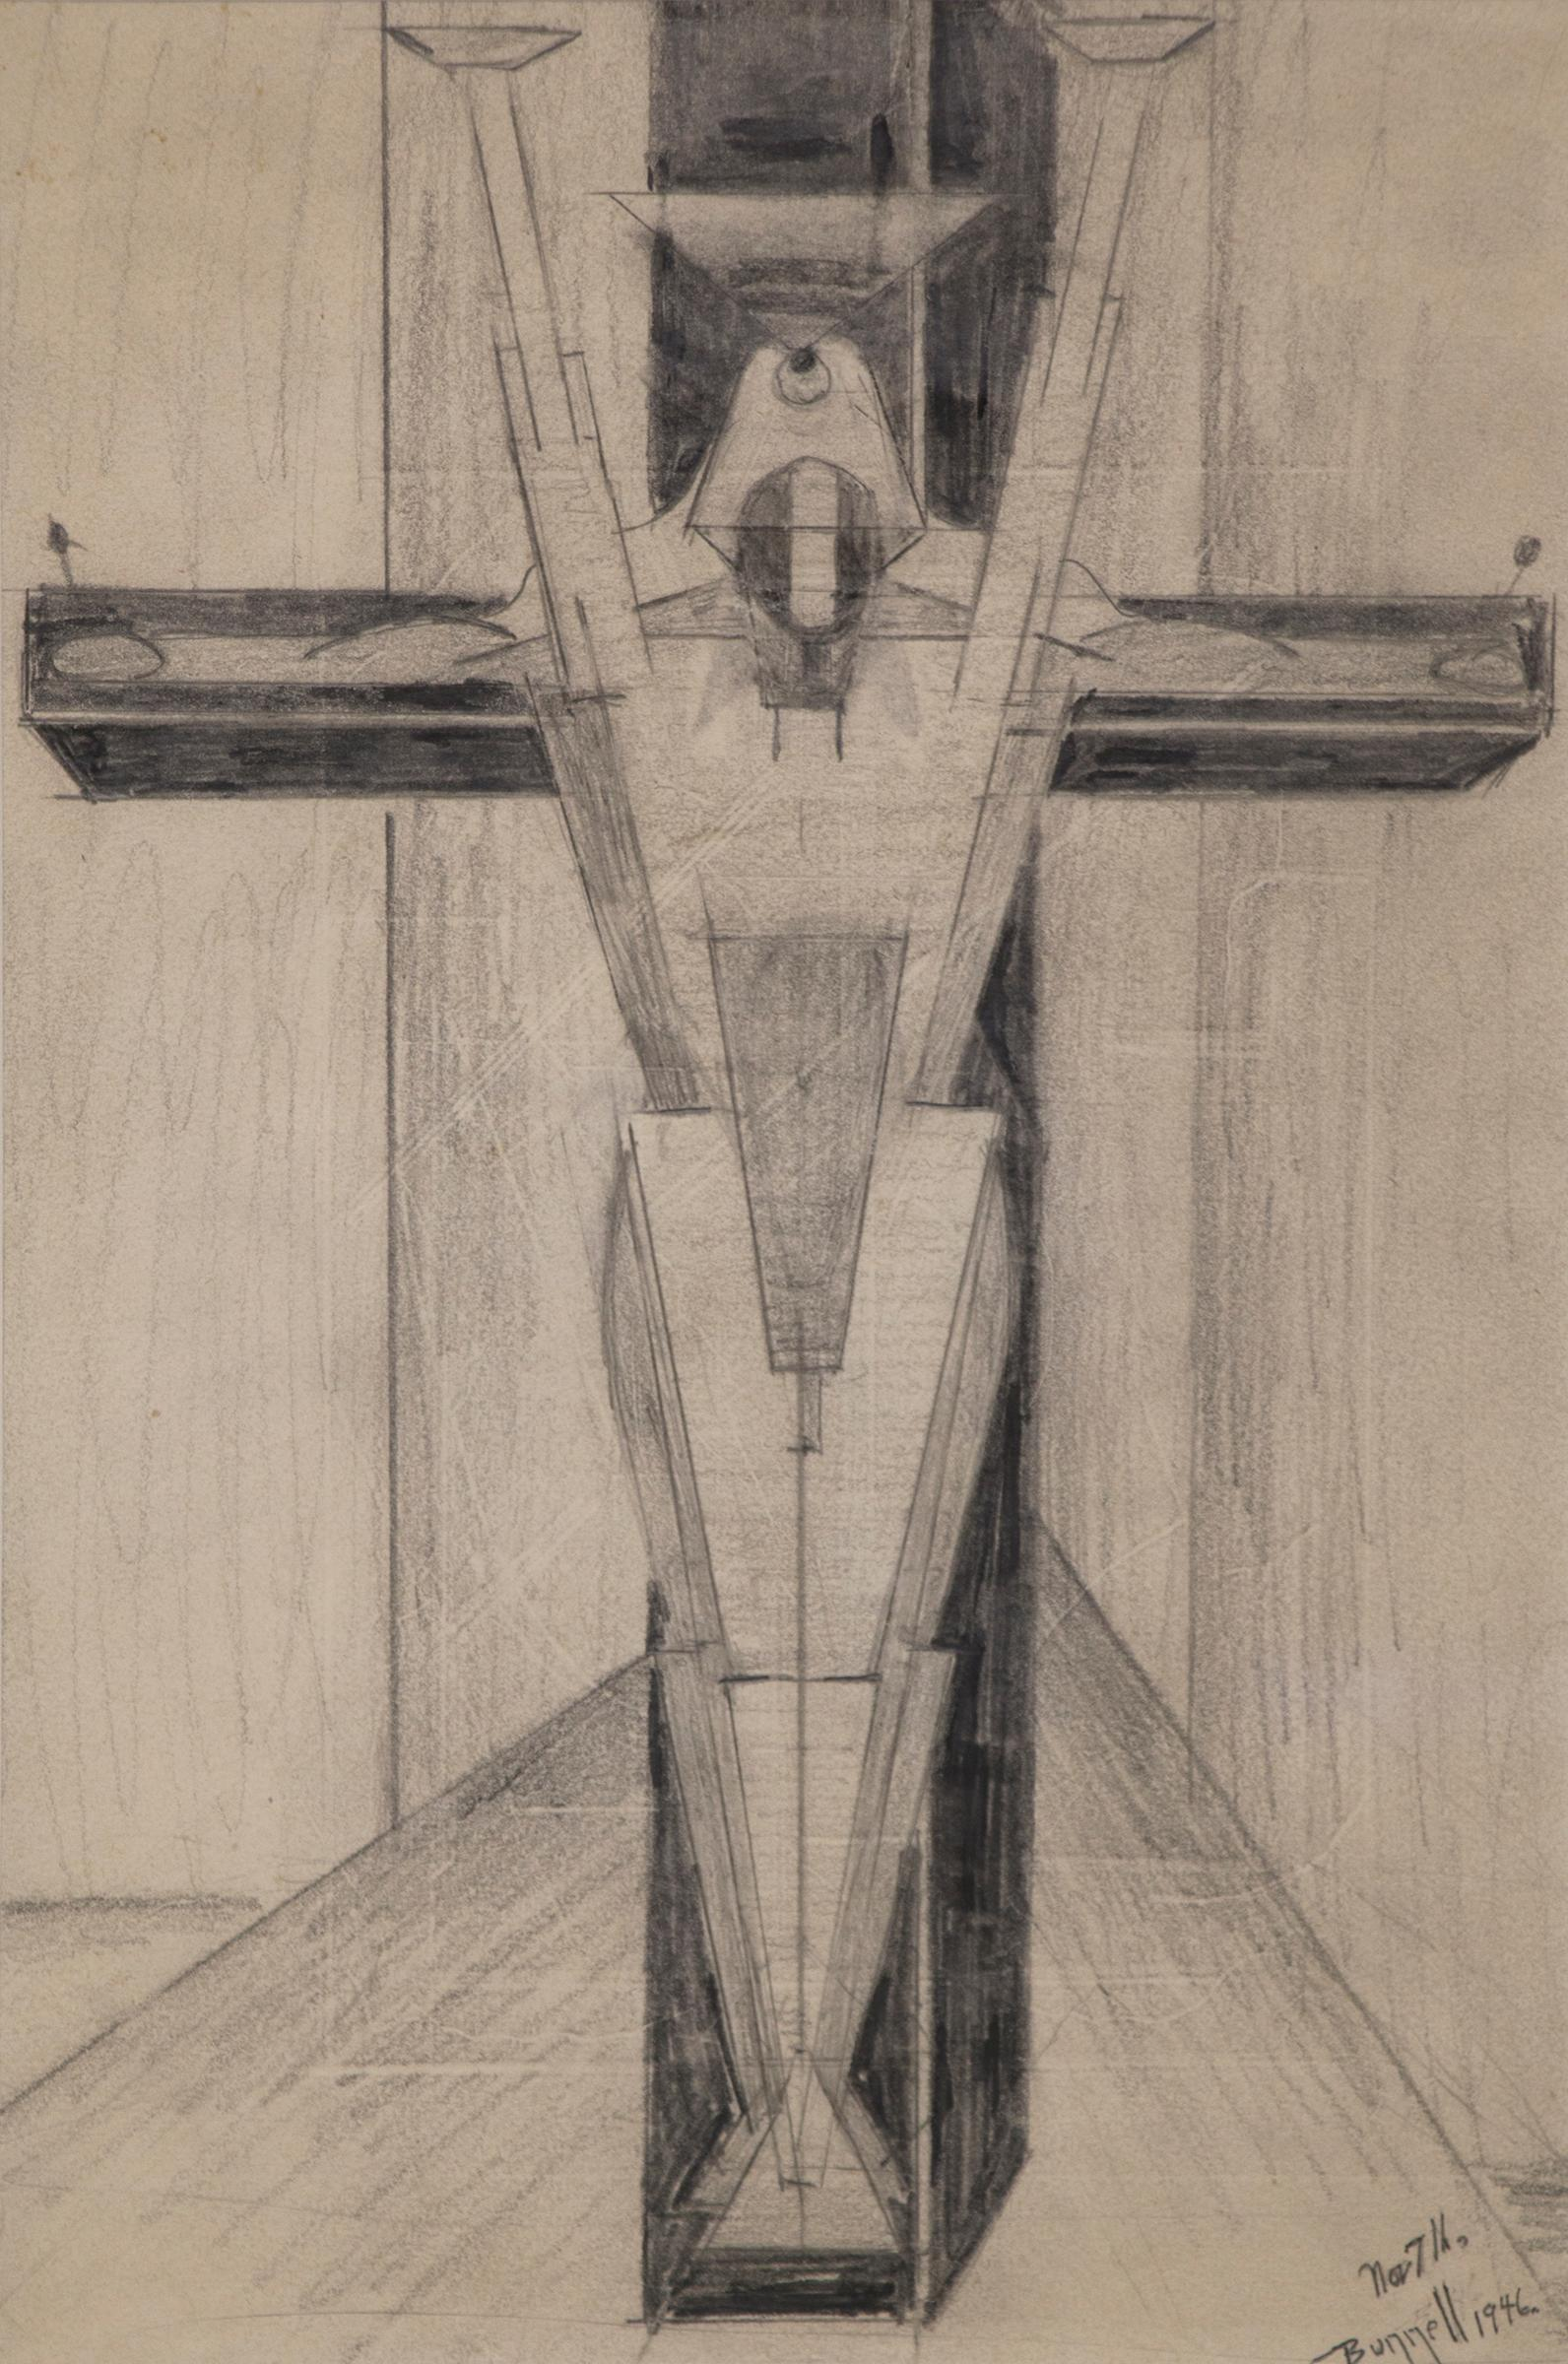 Untitled Figure on a Cross (Futurism/Cubism, Black & White Drawing)